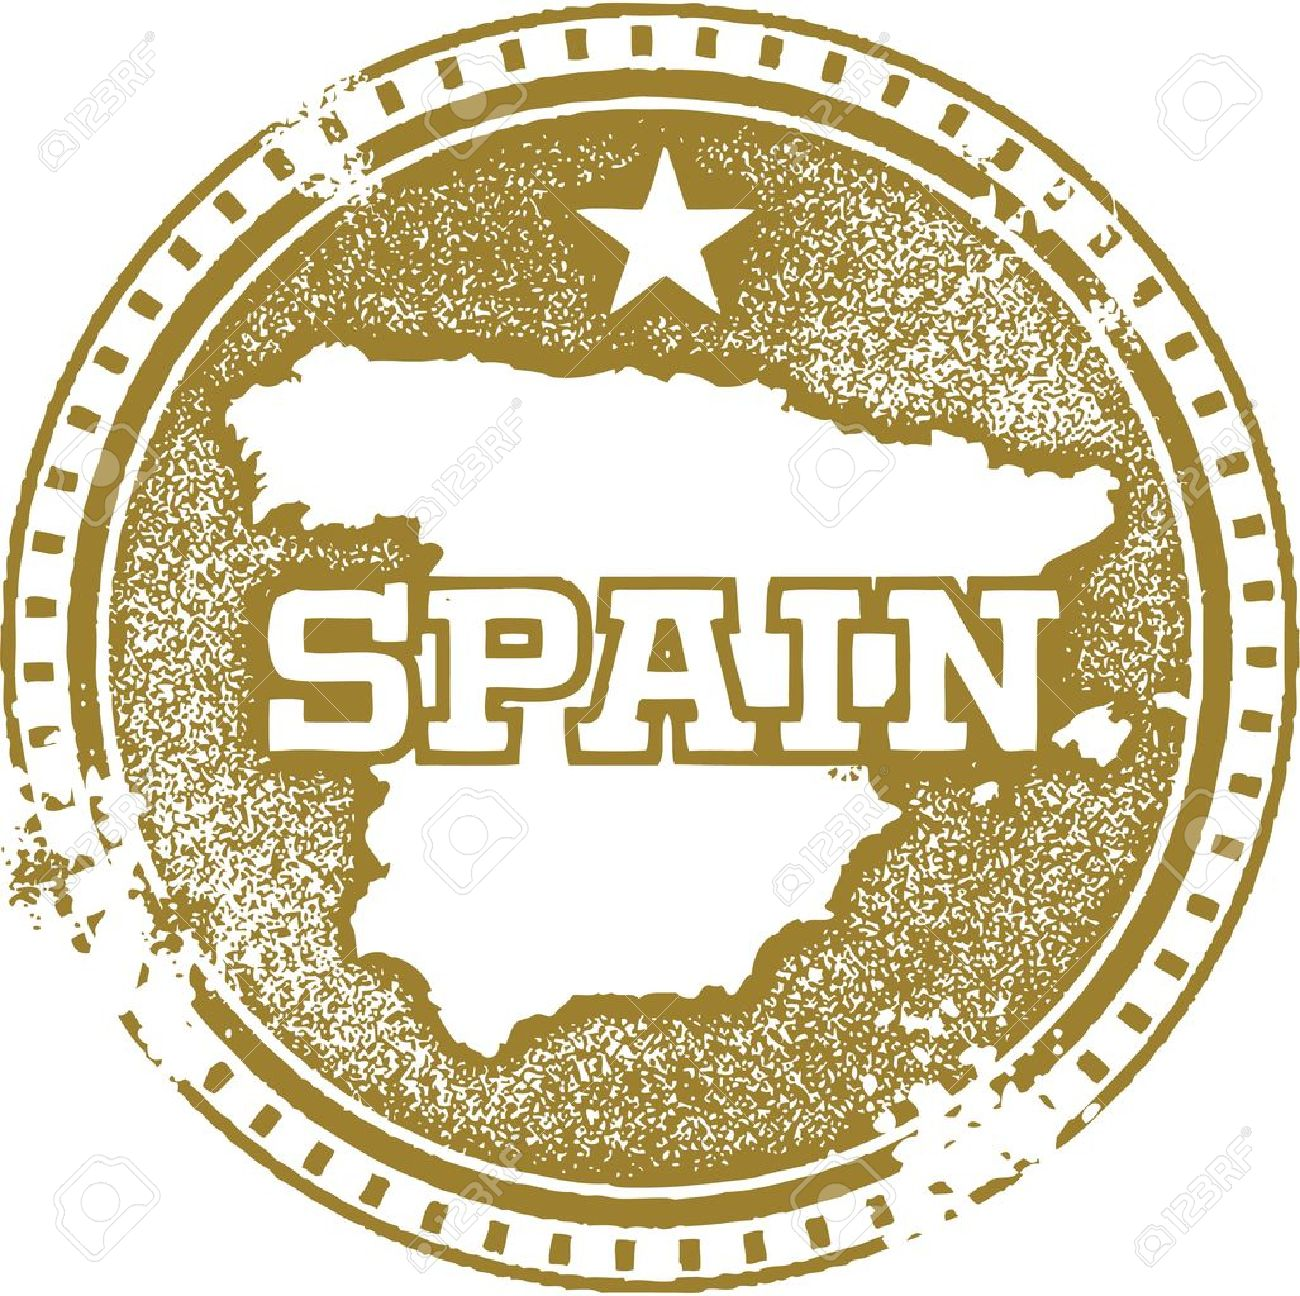 hight resolution of vector vintage spain country stamp